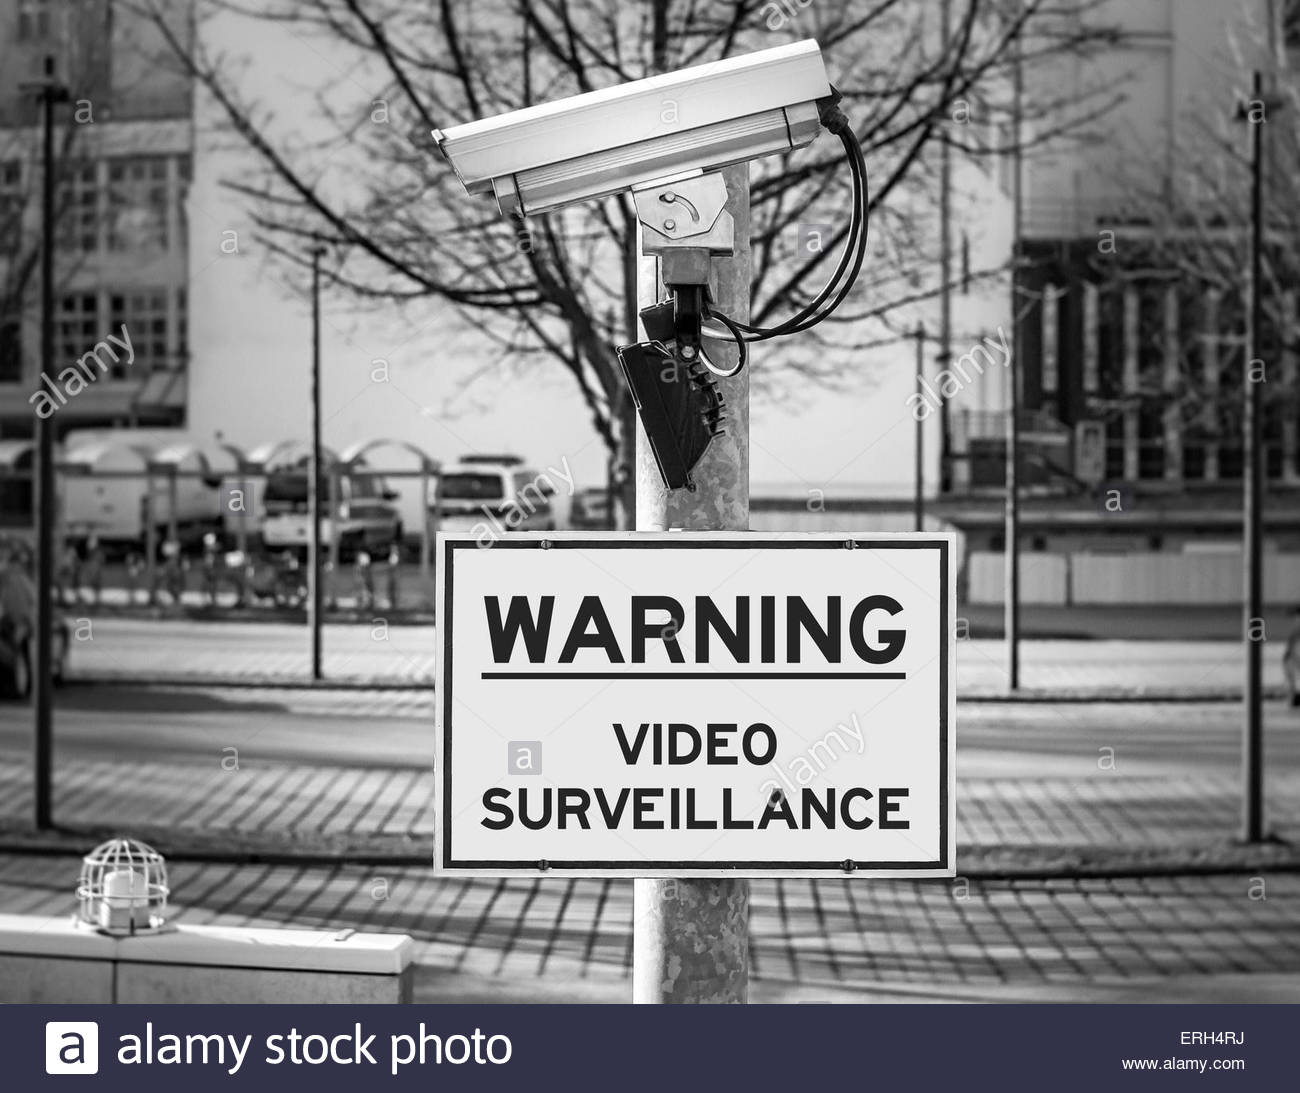 Warning - Video Surveillance - Stock Image